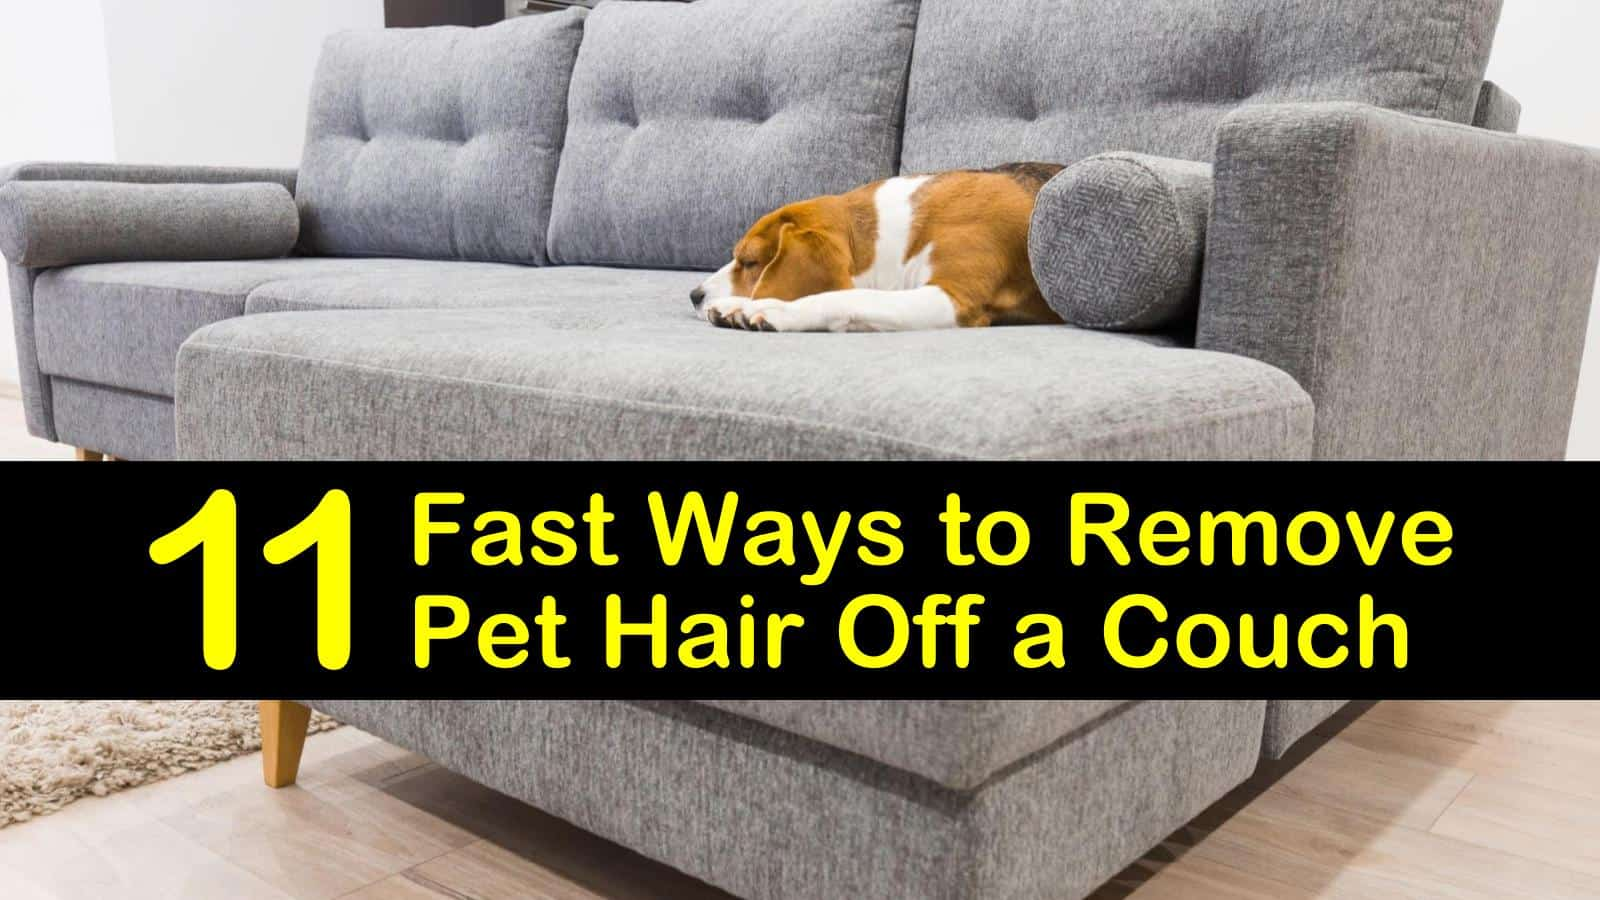 11 Fast Ways To Remove Pet Hair Off A Couch